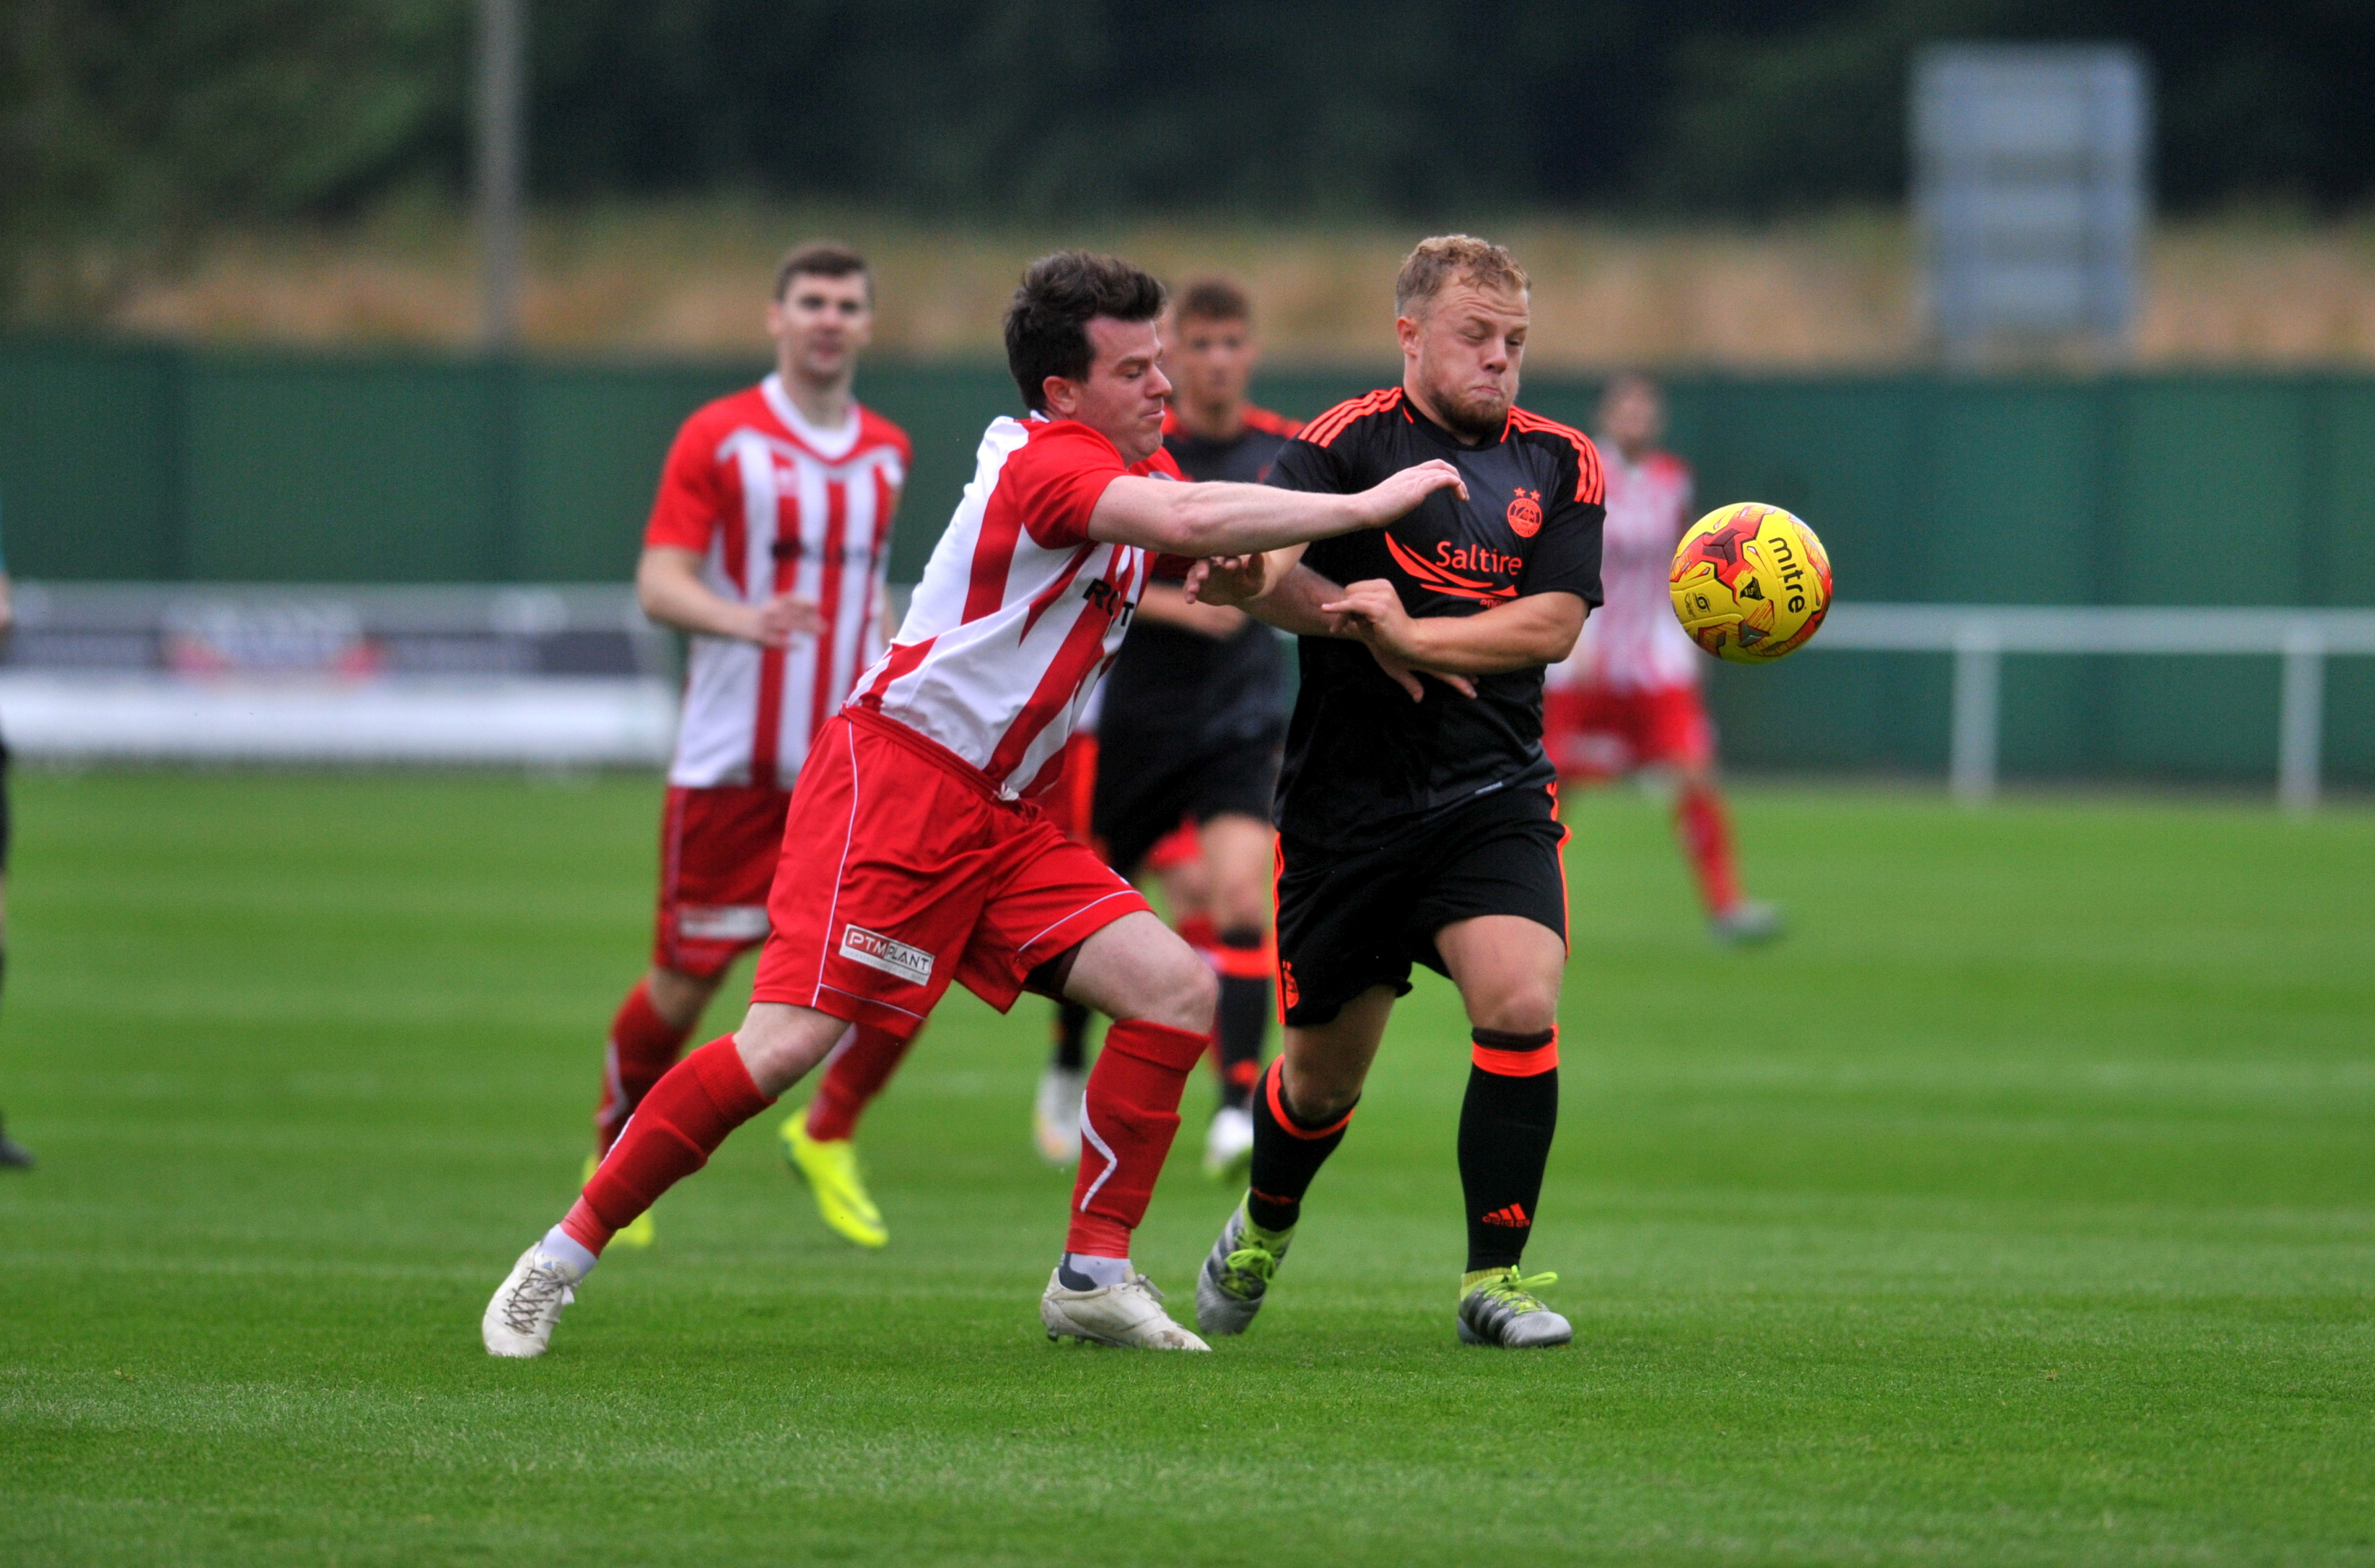 Formartine's Conor Gethins, left,  and Aberdeen's Dylan Thomas battle it out.